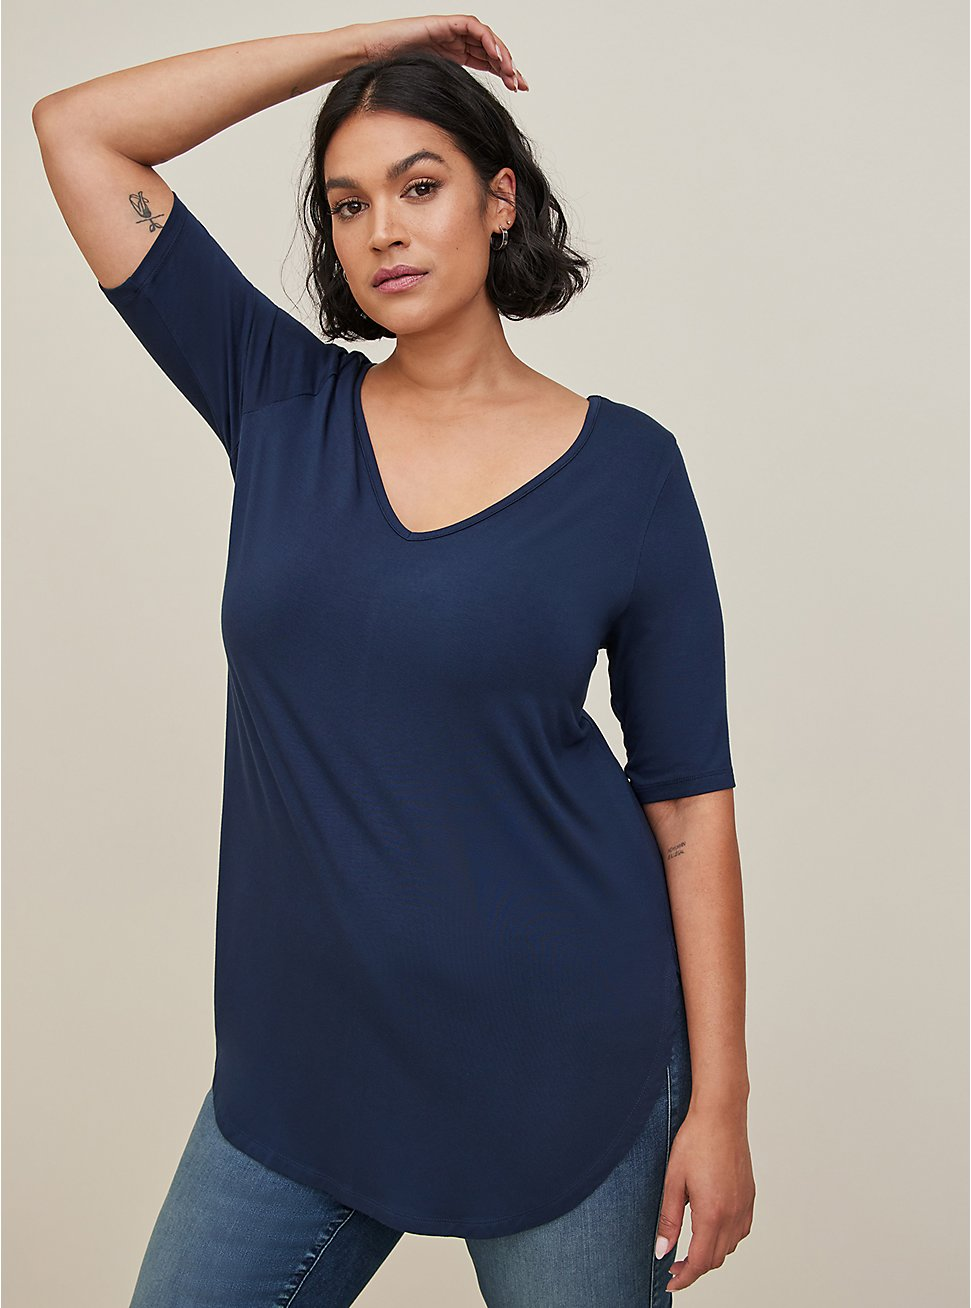 Plus Size Super Soft Navy Blue Favorite Tunic Tee, VIVID BLUE, hi-res